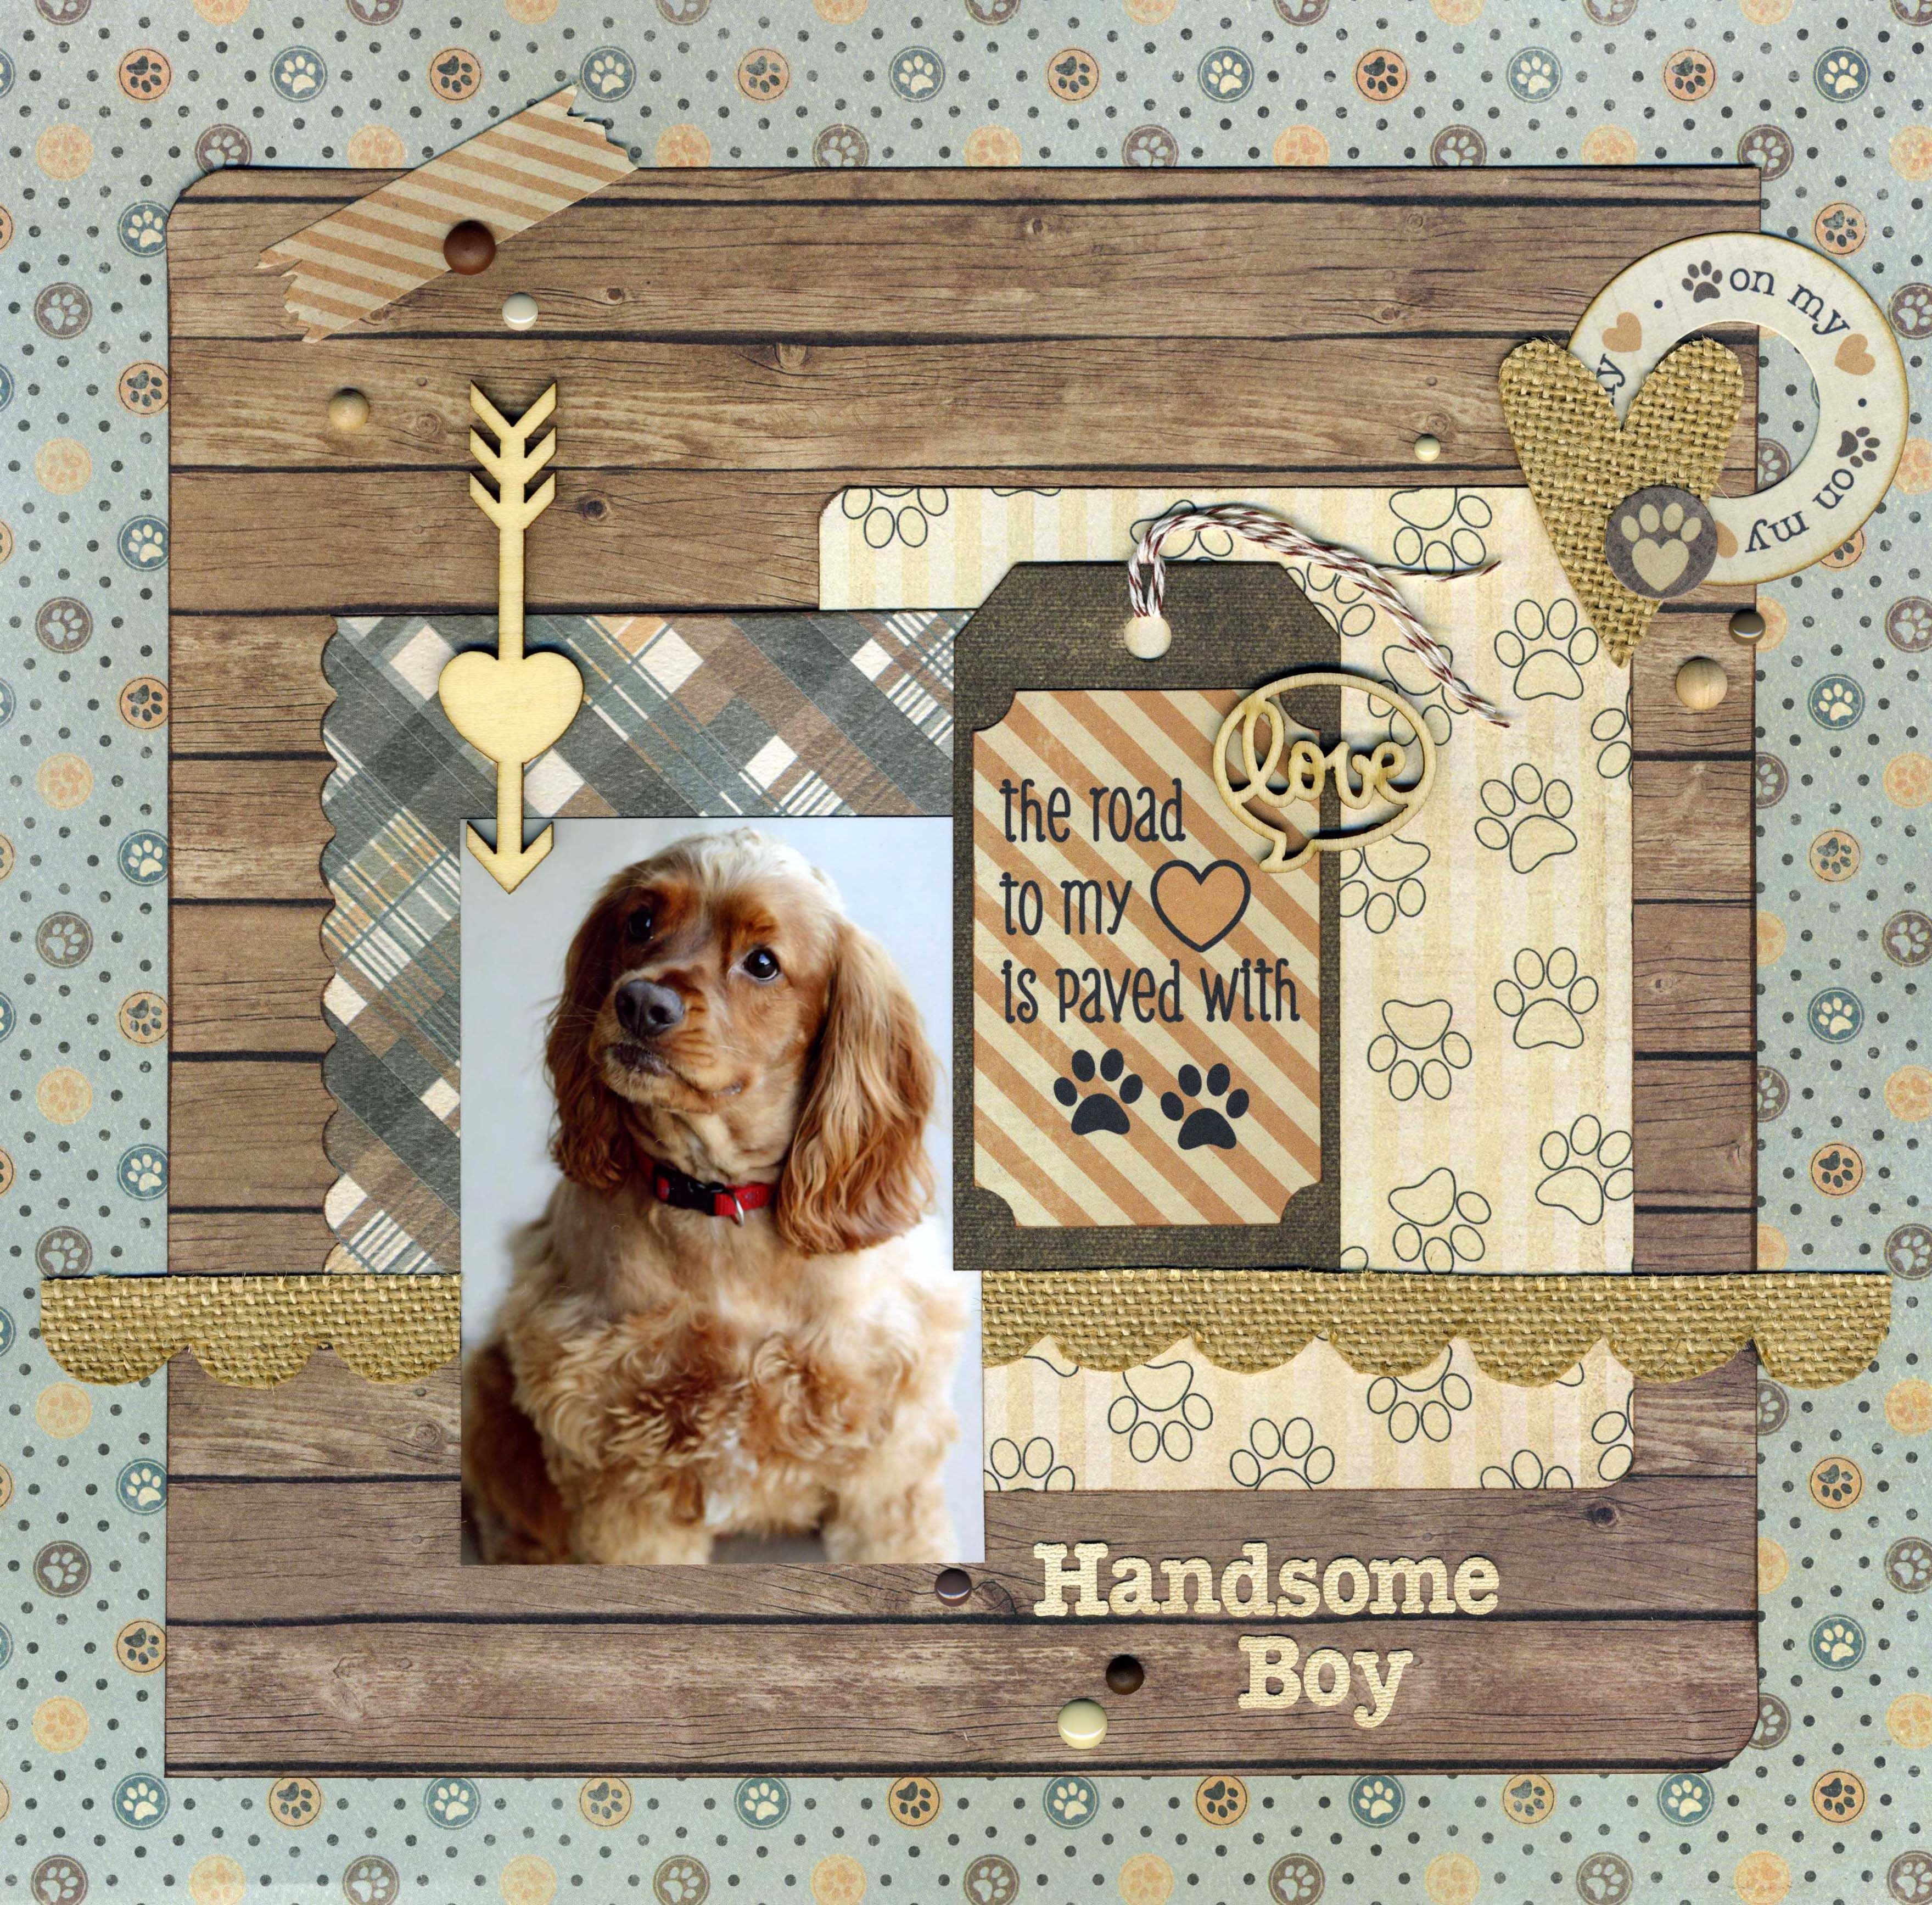 Scrapbook ideas for dogs - 1000 Images About Dog Scrapbook Ideas On Pinterest Handsome Boys Dog Scrapbook And Layout